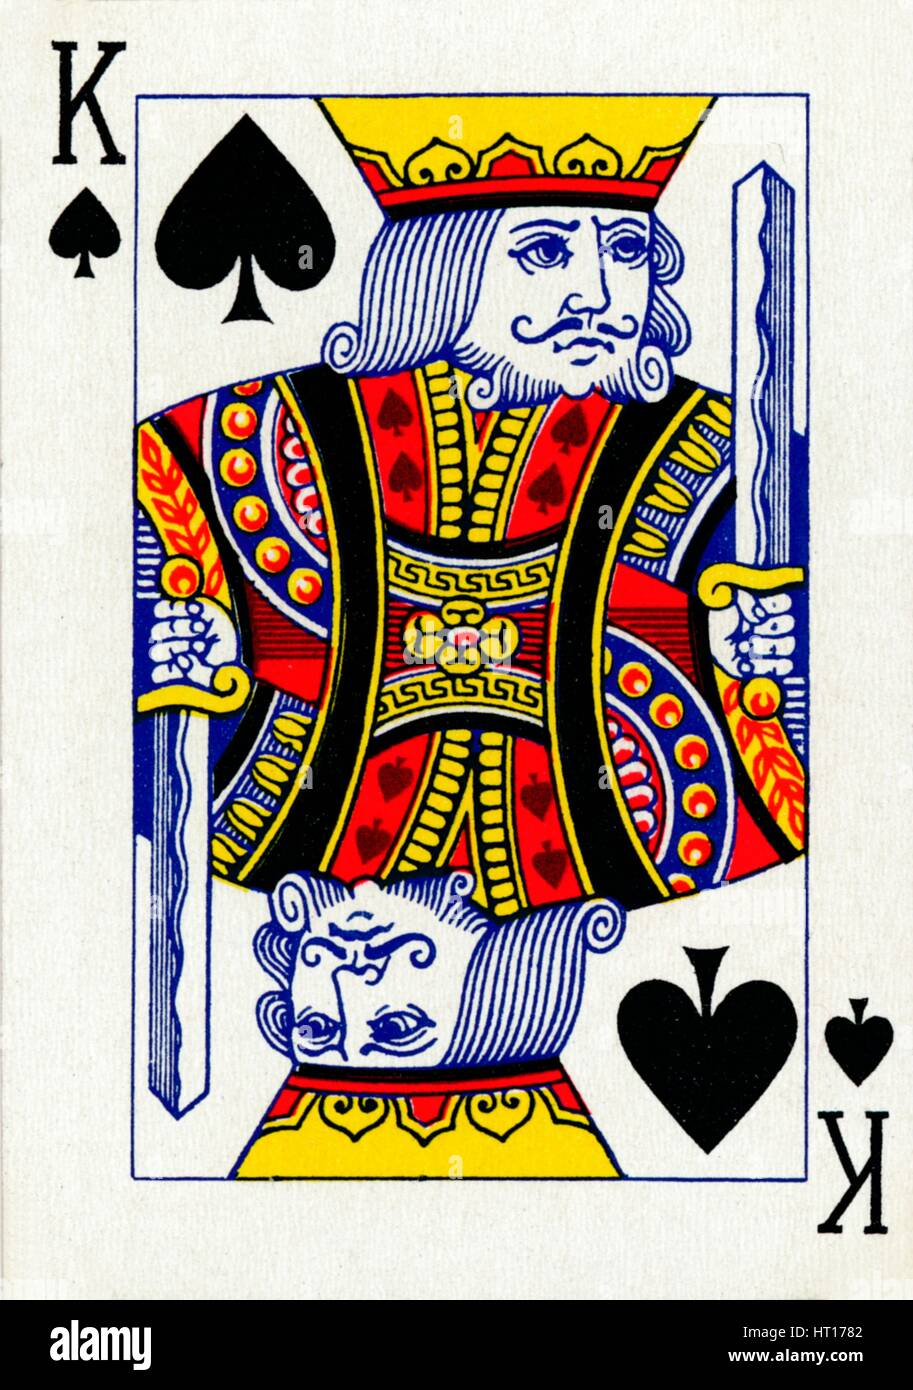 king of spades from a deck of goodall amp son ltd playing